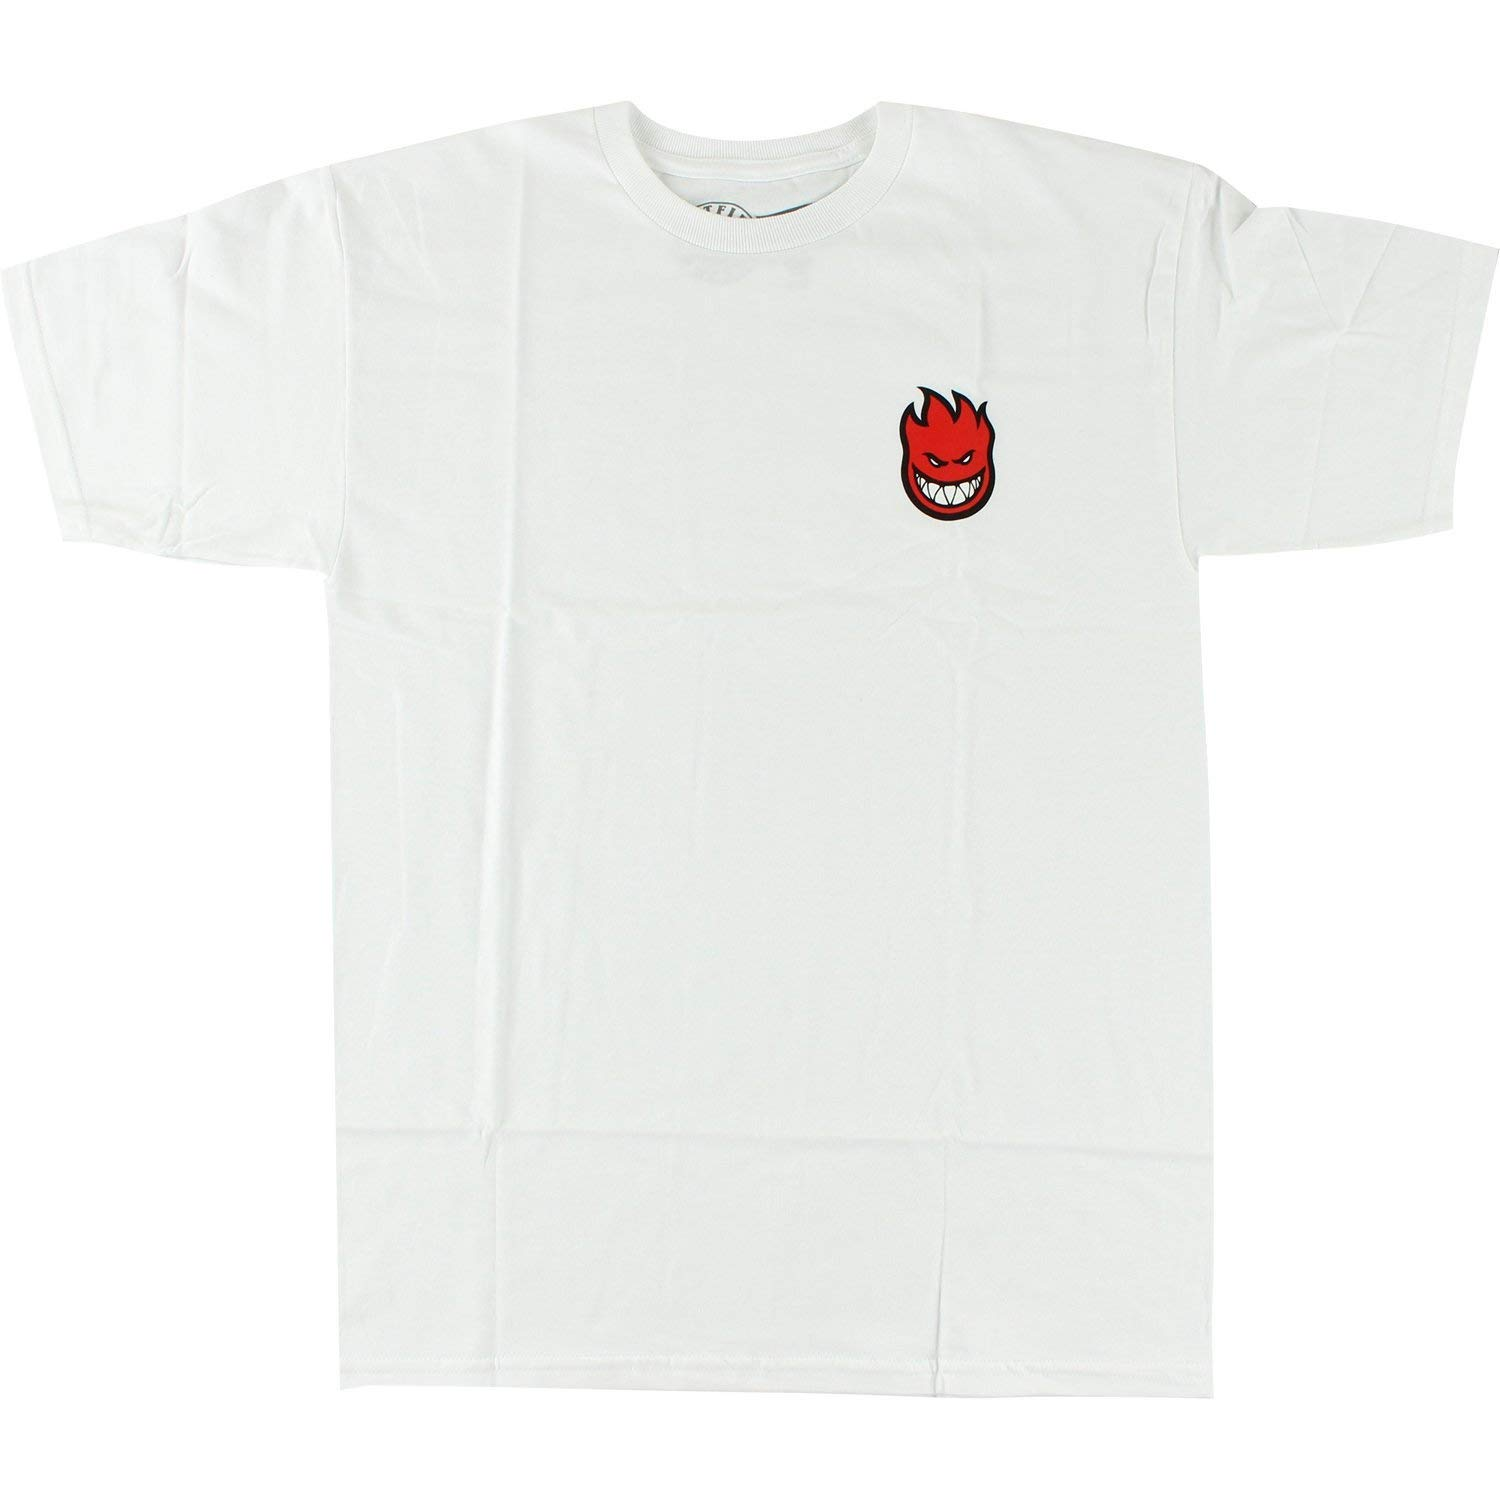 Spitfire Lil Bighead Fill T-Shirt - Size: SMALL White/Red